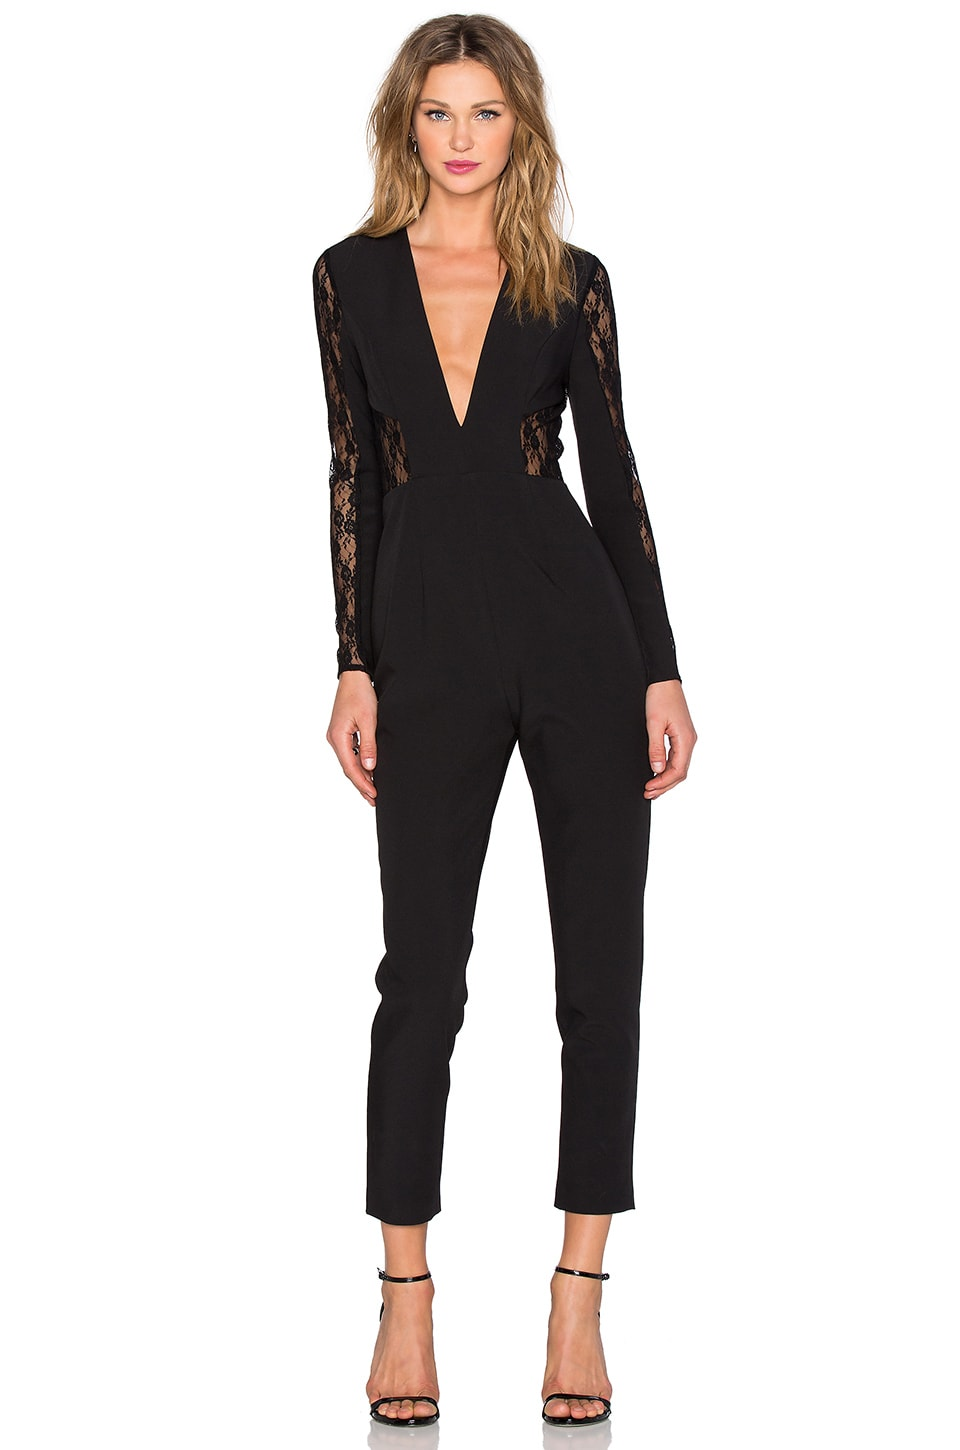 NBD x REVOLVE Limits Jumpsuit in Black